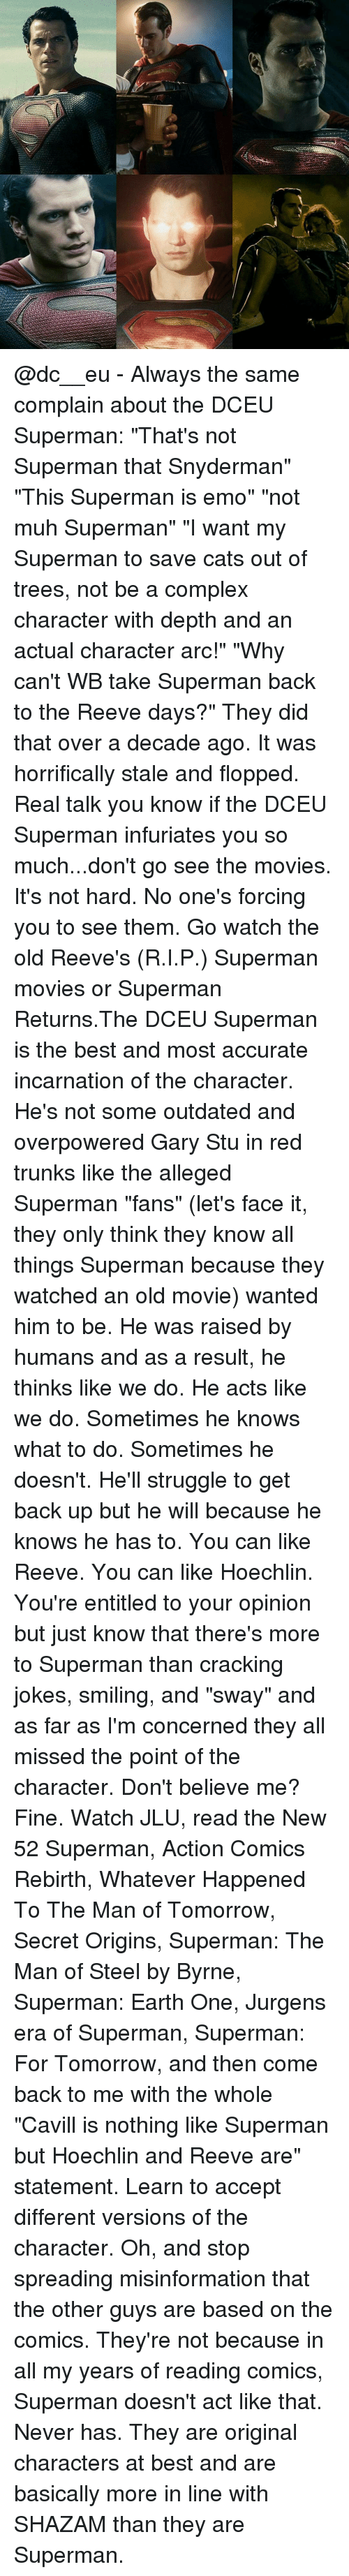 """Reev: @dc__eu - Always the same complain about the DCEU Superman: """"That's not Superman that Snyderman"""" """"This Superman is emo"""" """"not muh Superman"""" """"I want my Superman to save cats out of trees, not be a complex character with depth and an actual character arc!"""" """"Why can't WB take Superman back to the Reeve days?"""" They did that over a decade ago. It was horrifically stale and flopped. Real talk you know if the DCEU Superman infuriates you so much...don't go see the movies. It's not hard. No one's forcing you to see them. Go watch the old Reeve's (R.I.P.) Superman movies or Superman Returns.The DCEU Superman is the best and most accurate incarnation of the character. He's not some outdated and overpowered Gary Stu in red trunks like the alleged Superman """"fans"""" (let's face it, they only think they know all things Superman because they watched an old movie) wanted him to be. He was raised by humans and as a result, he thinks like we do. He acts like we do. Sometimes he knows what to do. Sometimes he doesn't. He'll struggle to get back up but he will because he knows he has to. You can like Reeve. You can like Hoechlin. You're entitled to your opinion but just know that there's more to Superman than cracking jokes, smiling, and """"sway"""" and as far as I'm concerned they all missed the point of the character. Don't believe me? Fine. Watch JLU, read the New 52 Superman, Action Comics Rebirth, Whatever Happened To The Man of Tomorrow, Secret Origins, Superman: The Man of Steel by Byrne, Superman: Earth One, Jurgens era of Superman, Superman: For Tomorrow, and then come back to me with the whole """"Cavill is nothing like Superman but Hoechlin and Reeve are"""" statement. Learn to accept different versions of the character. Oh, and stop spreading misinformation that the other guys are based on the comics. They're not because in all my years of reading comics, Superman doesn't act like that. Never has. They are original characters at best and are basically more in line with SHAZAM than """